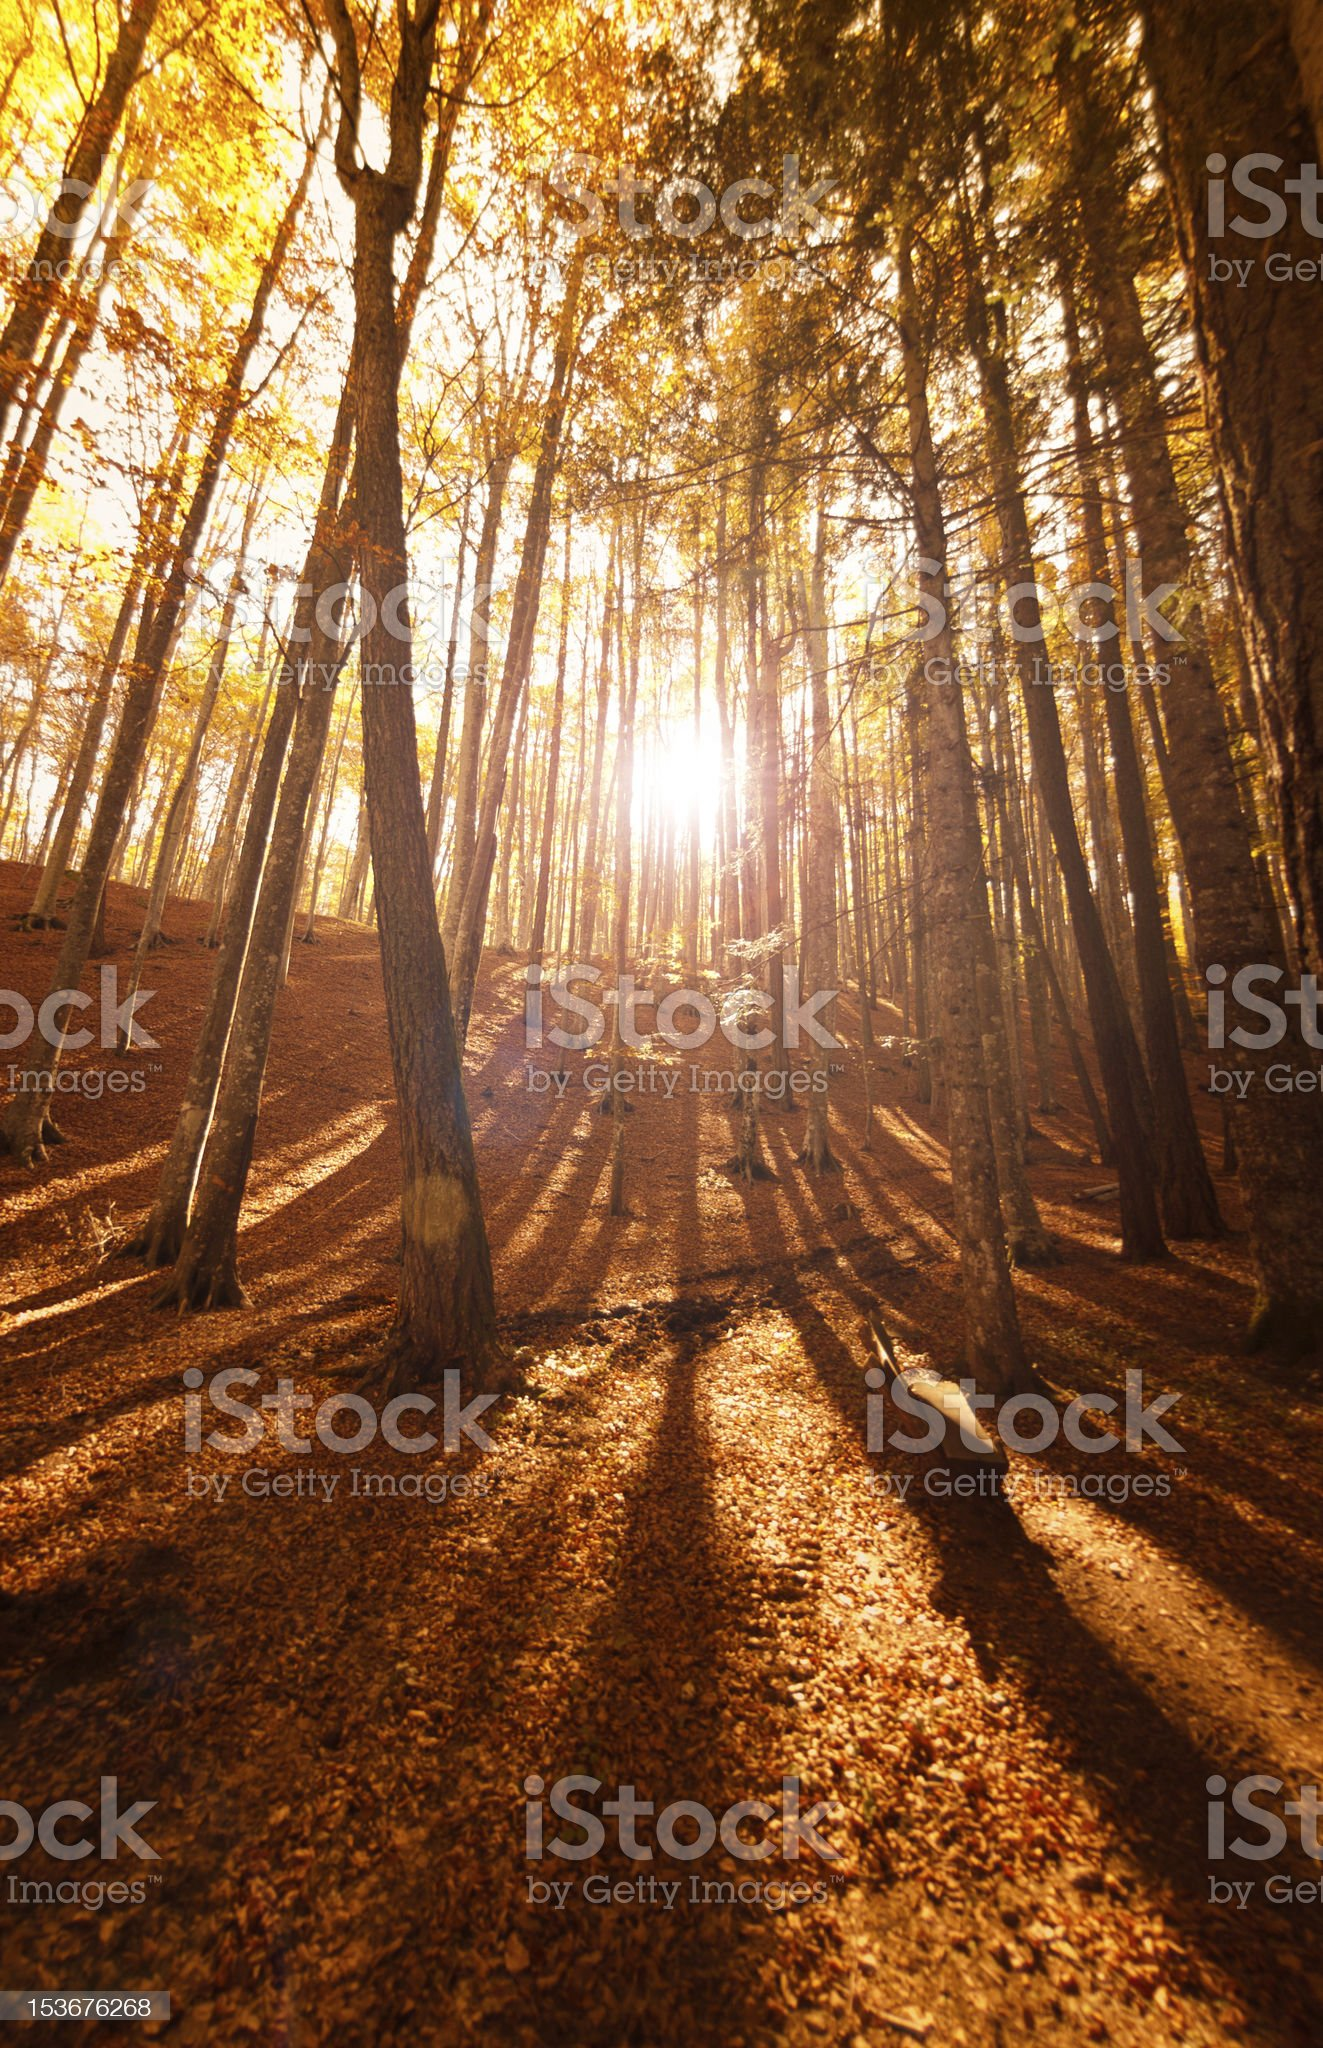 Sunbeams in Scenics Autumn Forest royalty-free stock photo